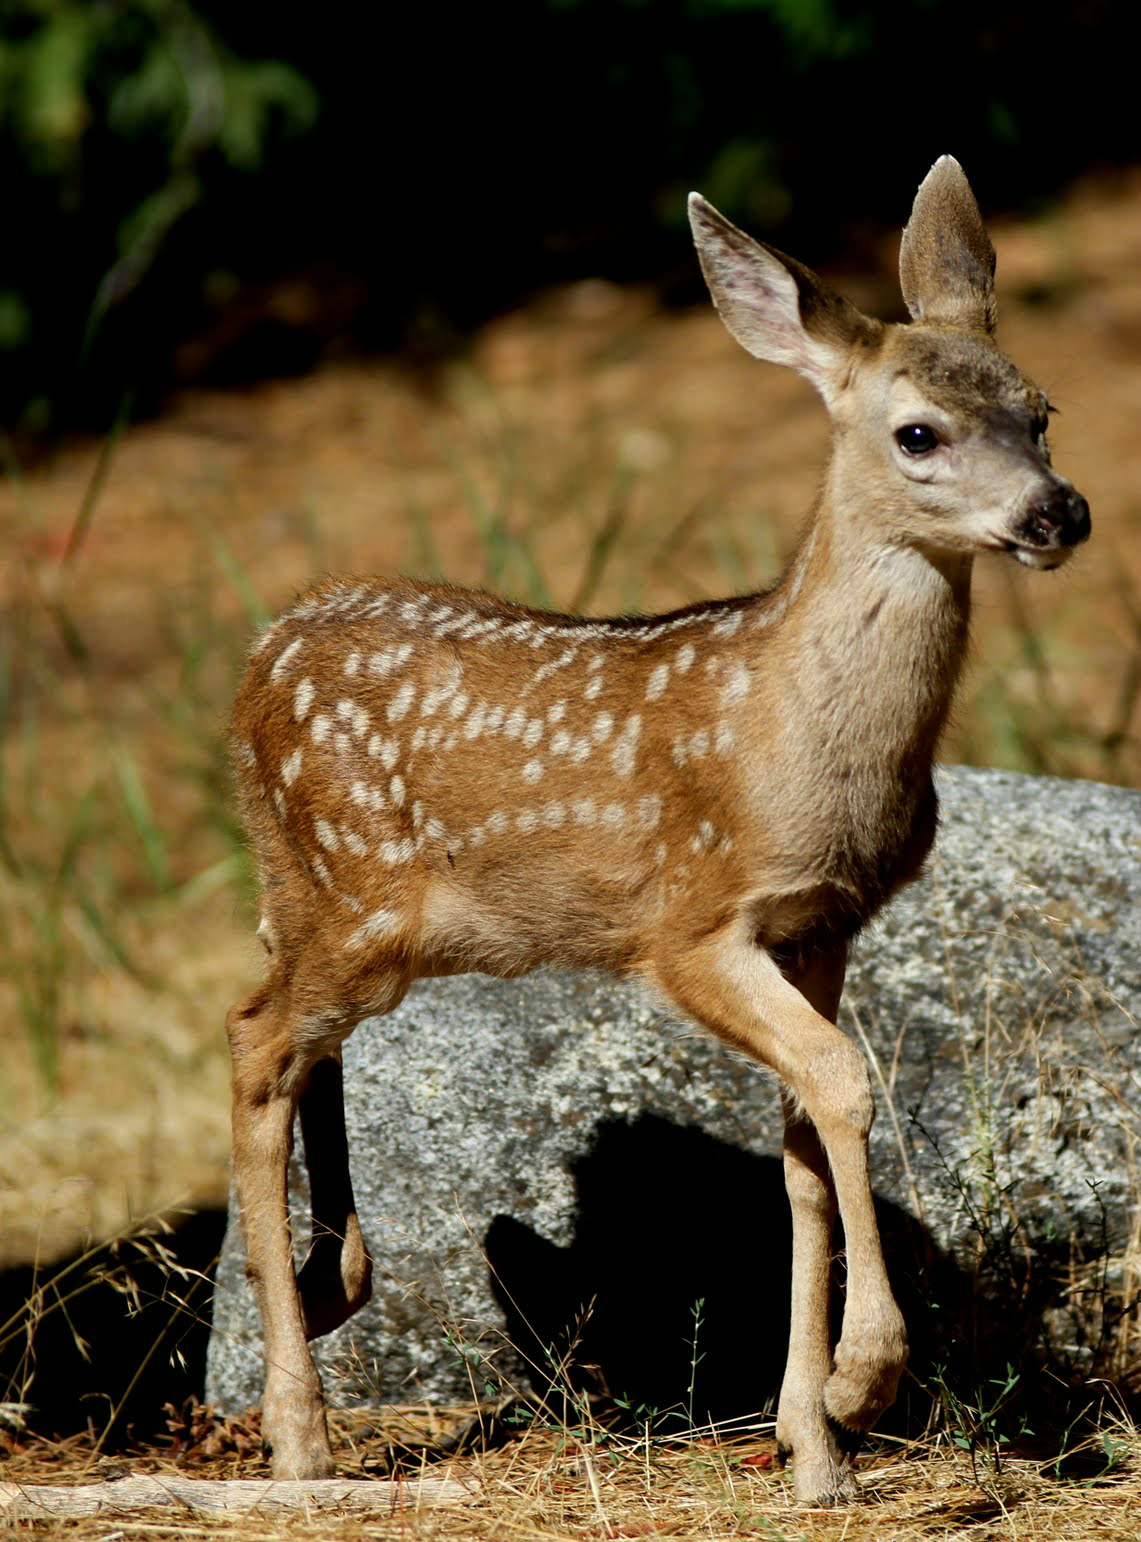 Yosemite National Park Is Requesting Help From Visitors To Protect Newborn Animals In The During Summer Months Many Baby Birds Fawns